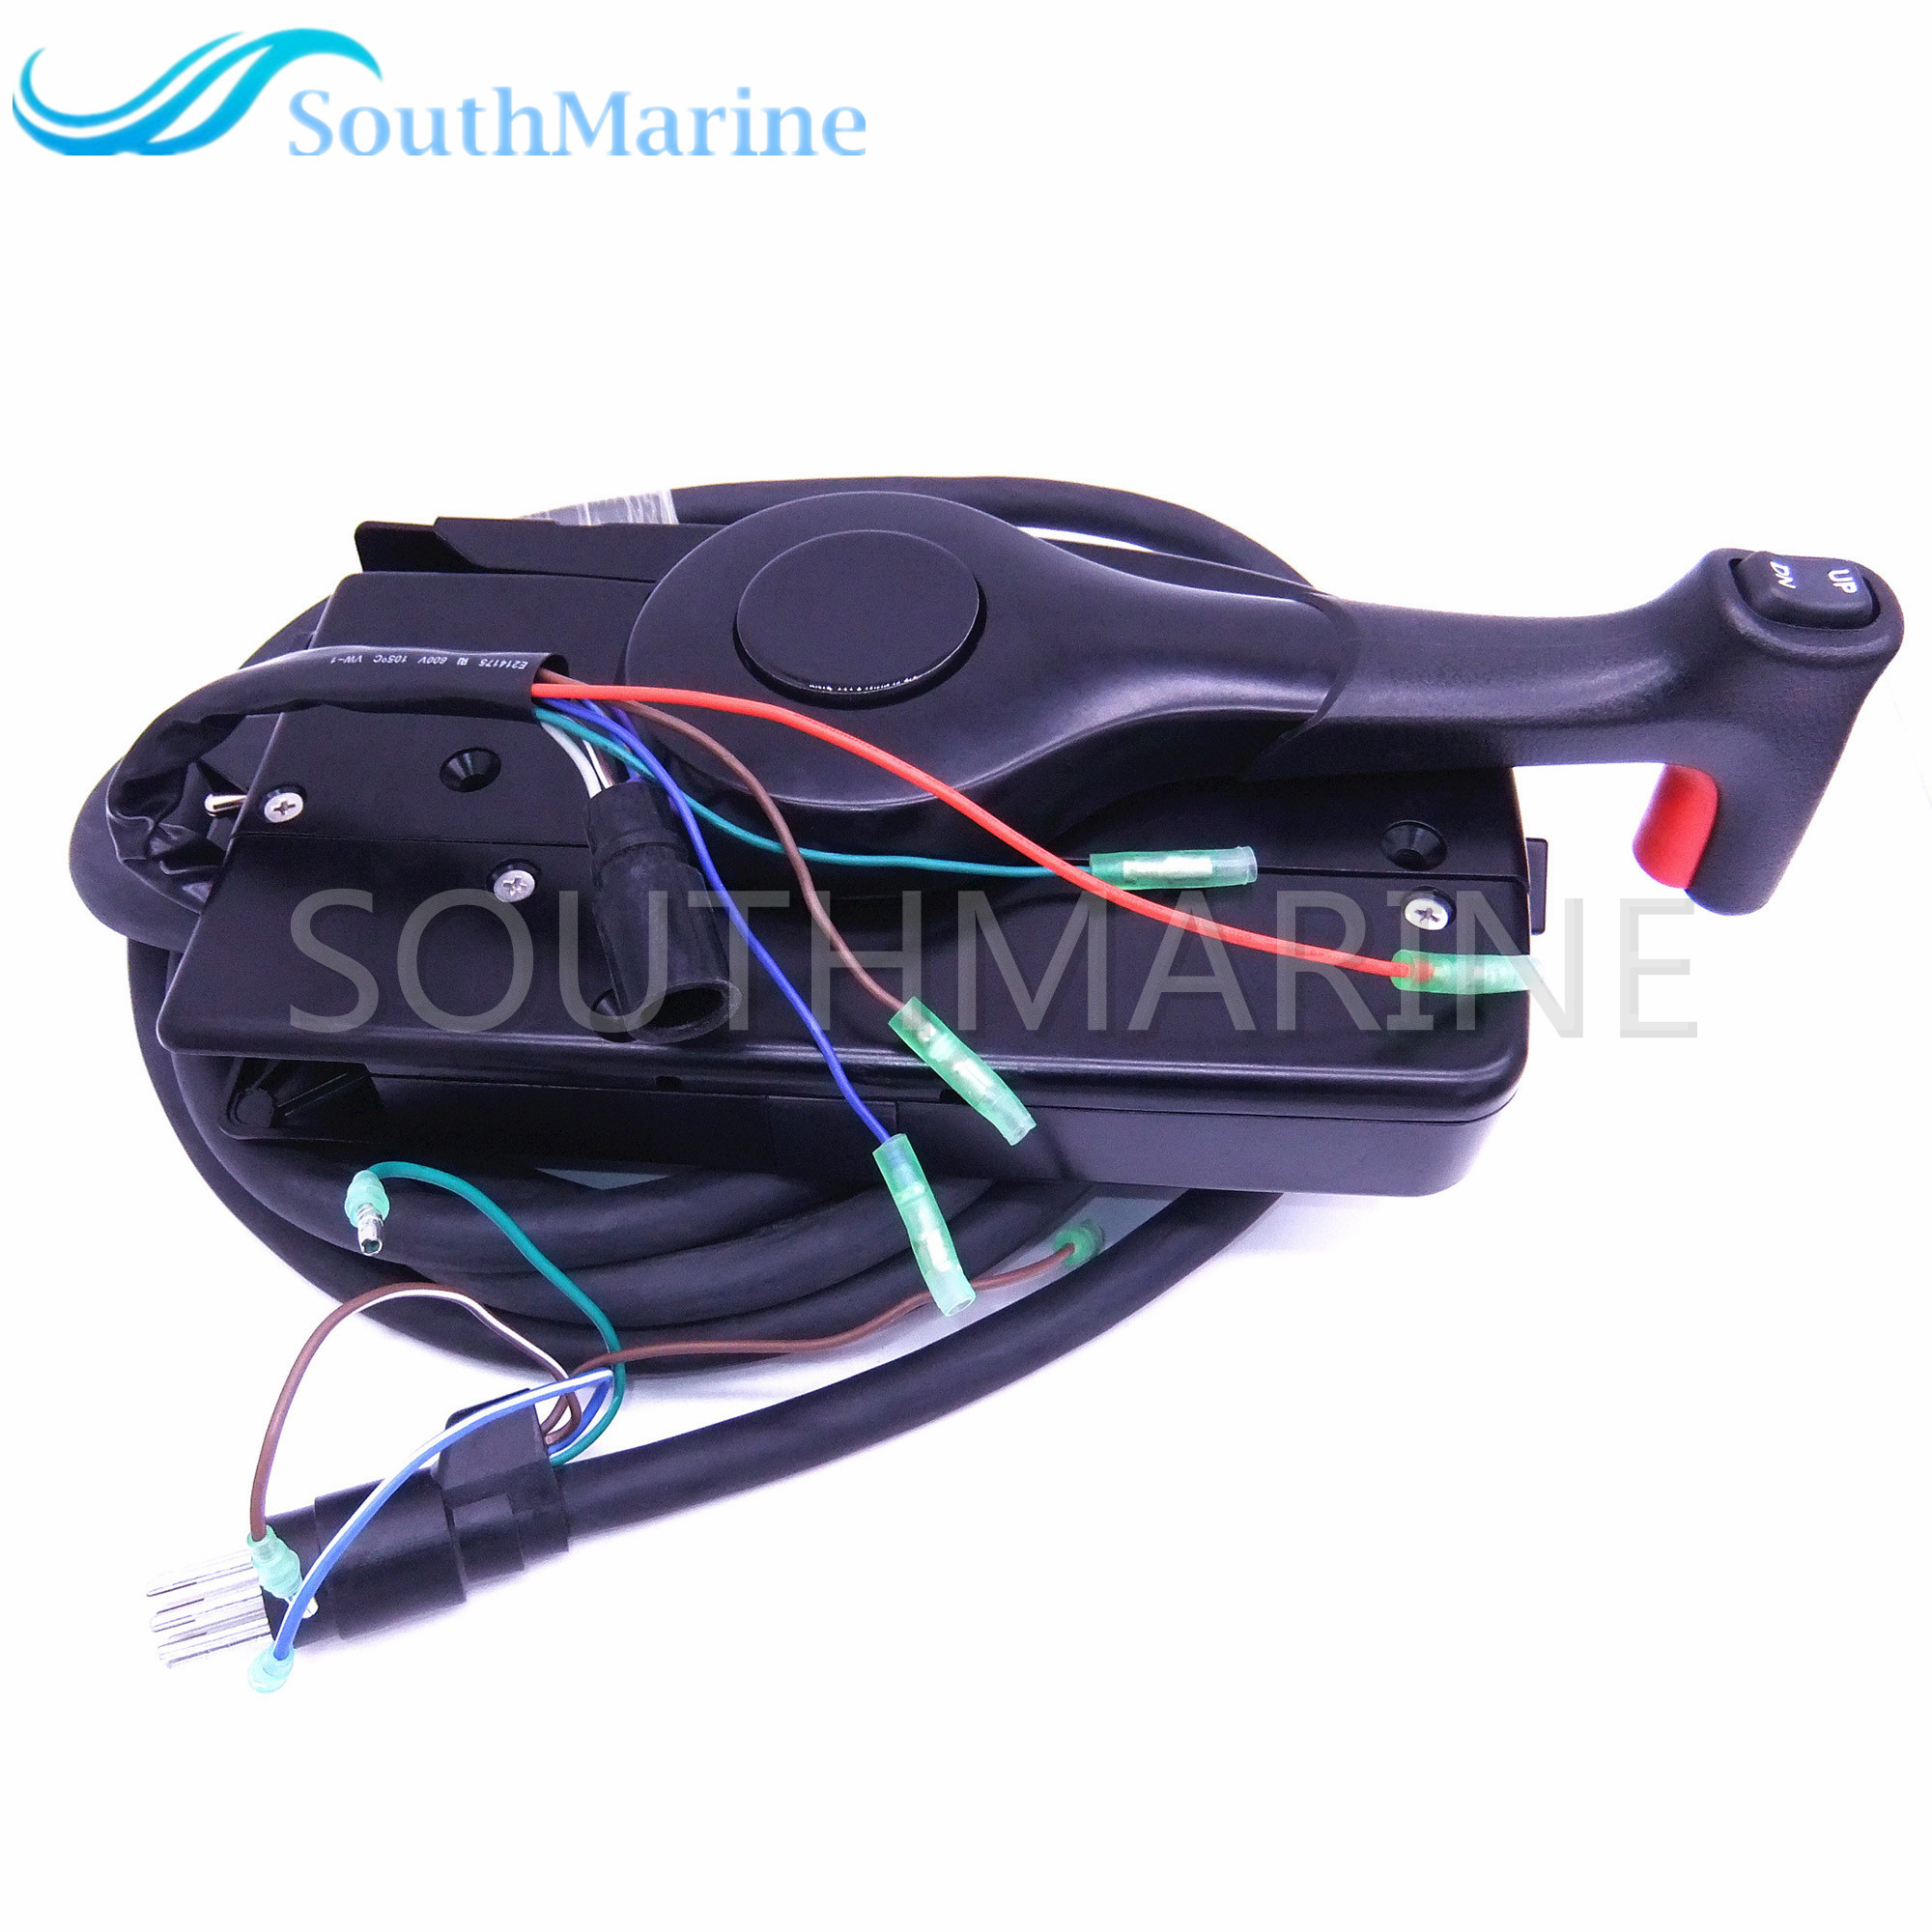 Boat Motor Side Mount Remote Control Box 881170A15 With 8 Pin for Mercury Outboard Engine PT Left Side, Free Shipping